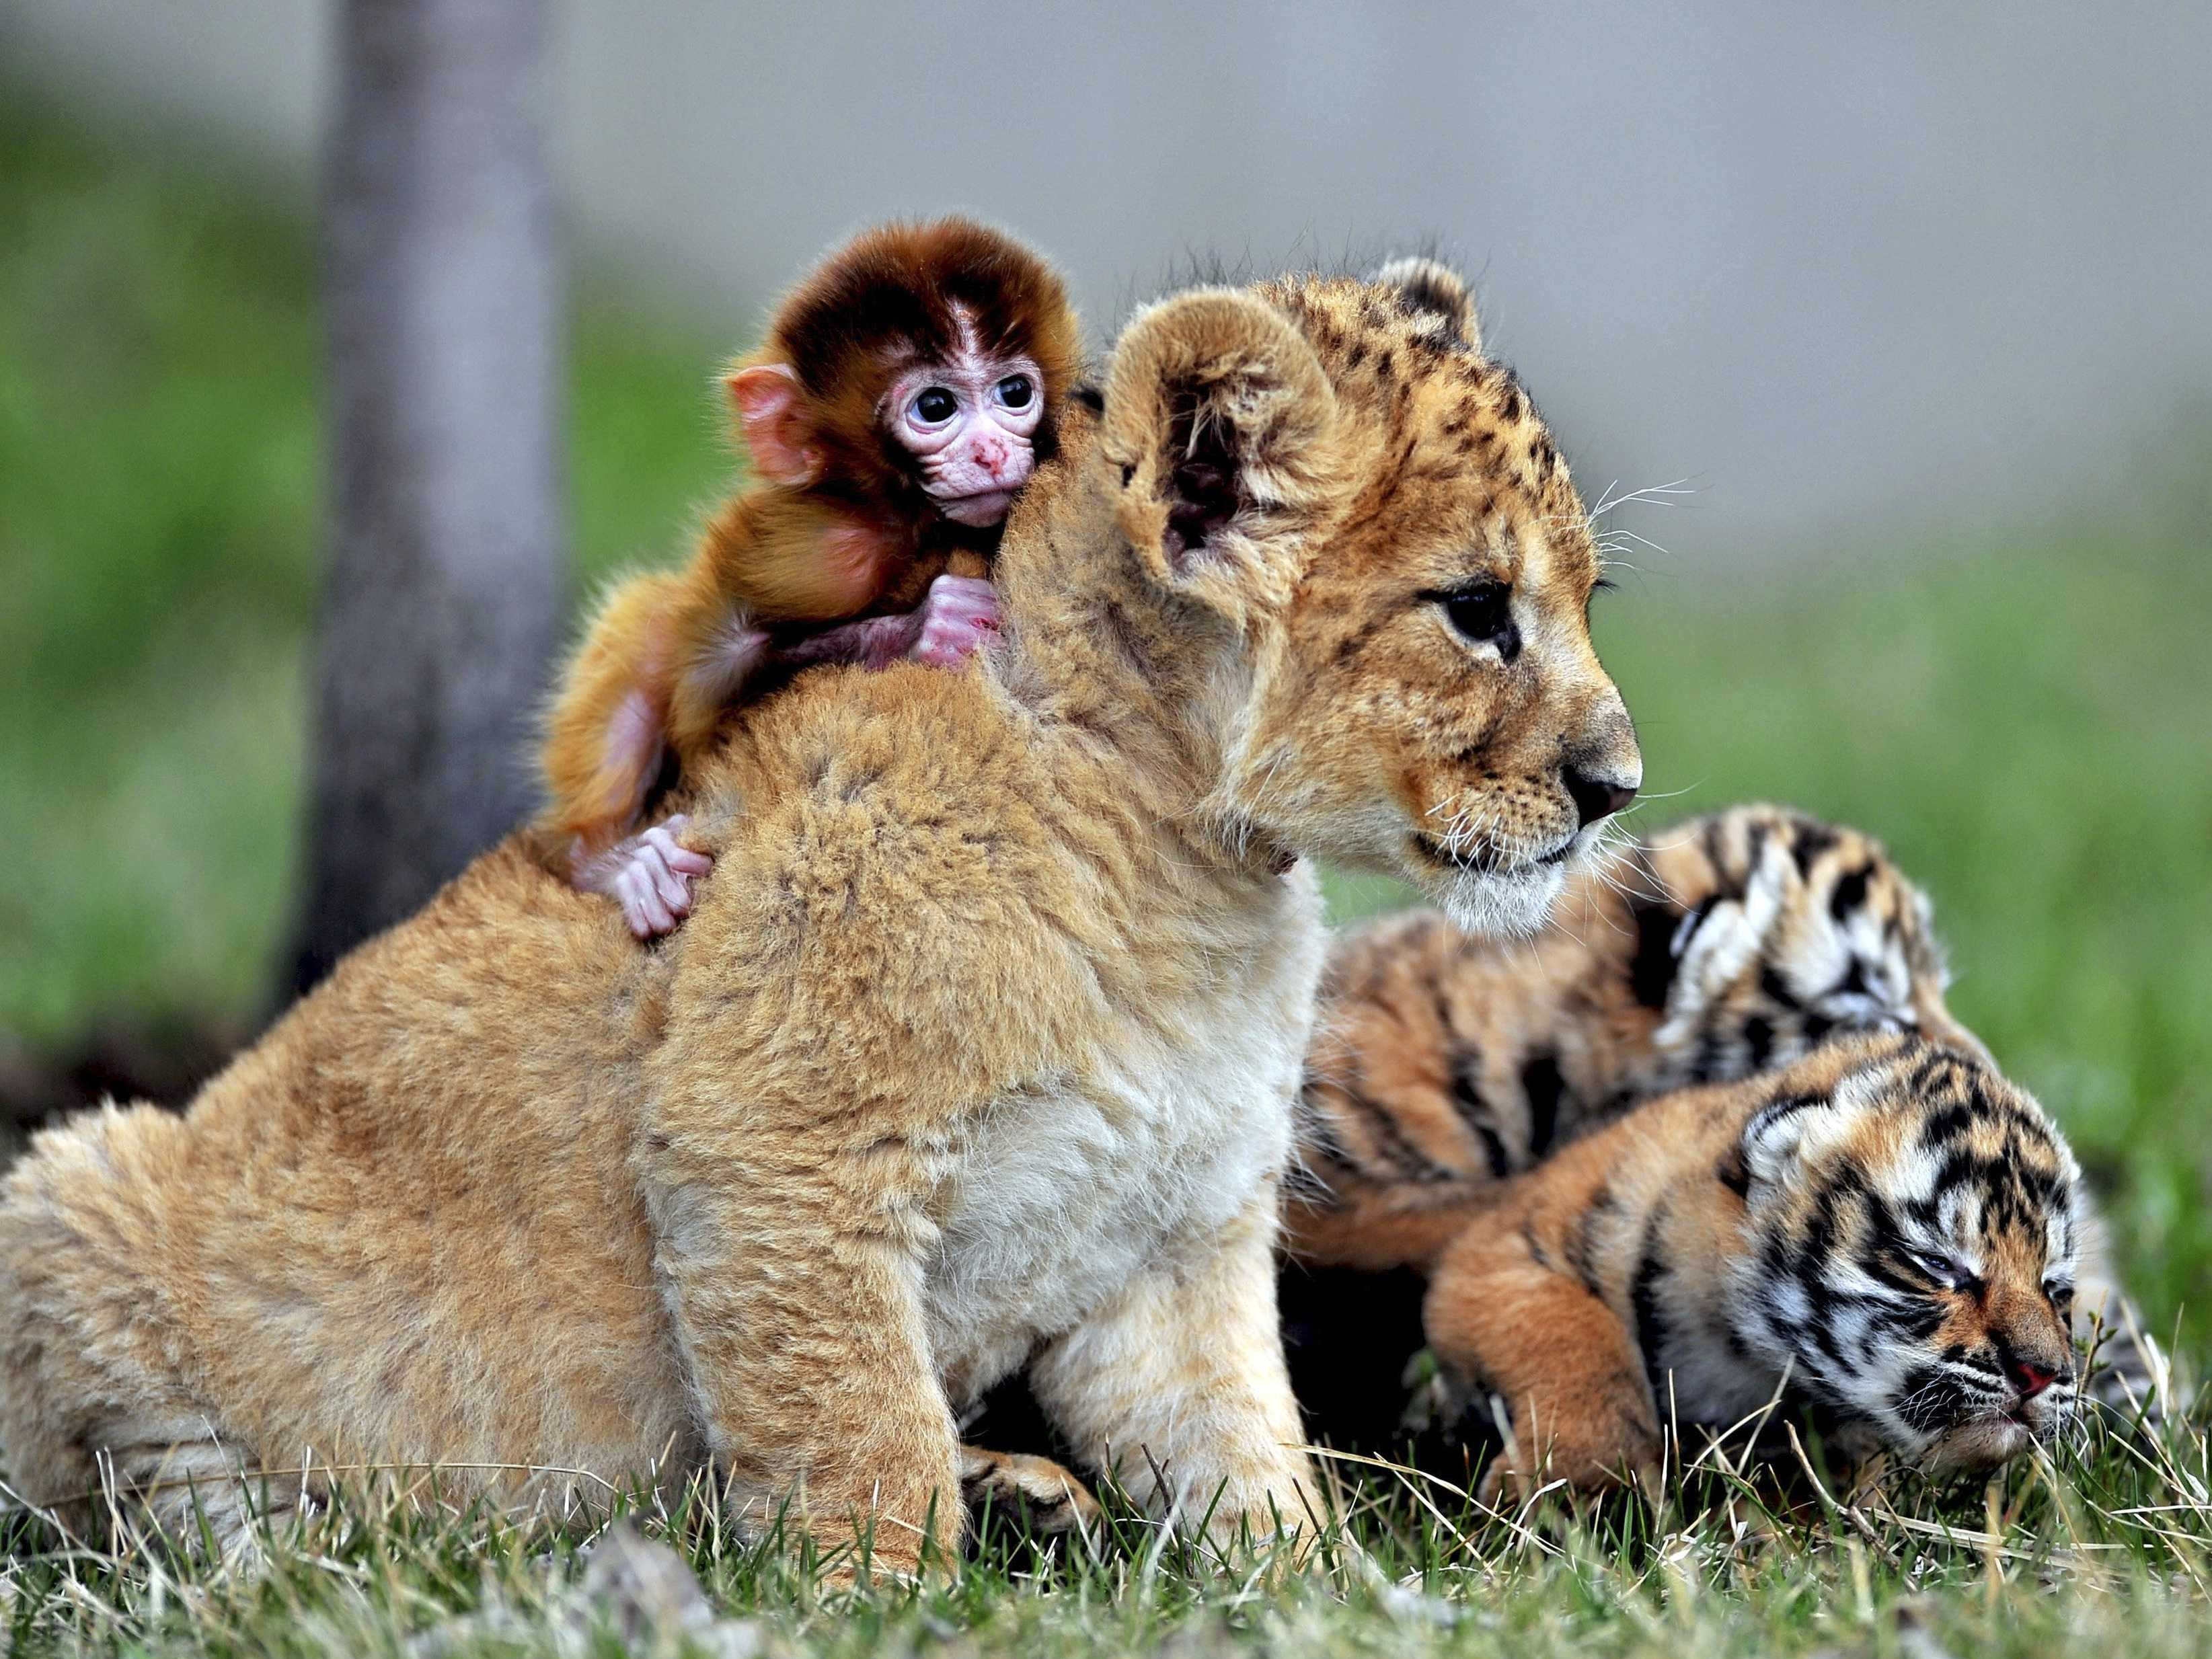 Monkey, Lion and Tigers Baby Animals 425.15 Kb